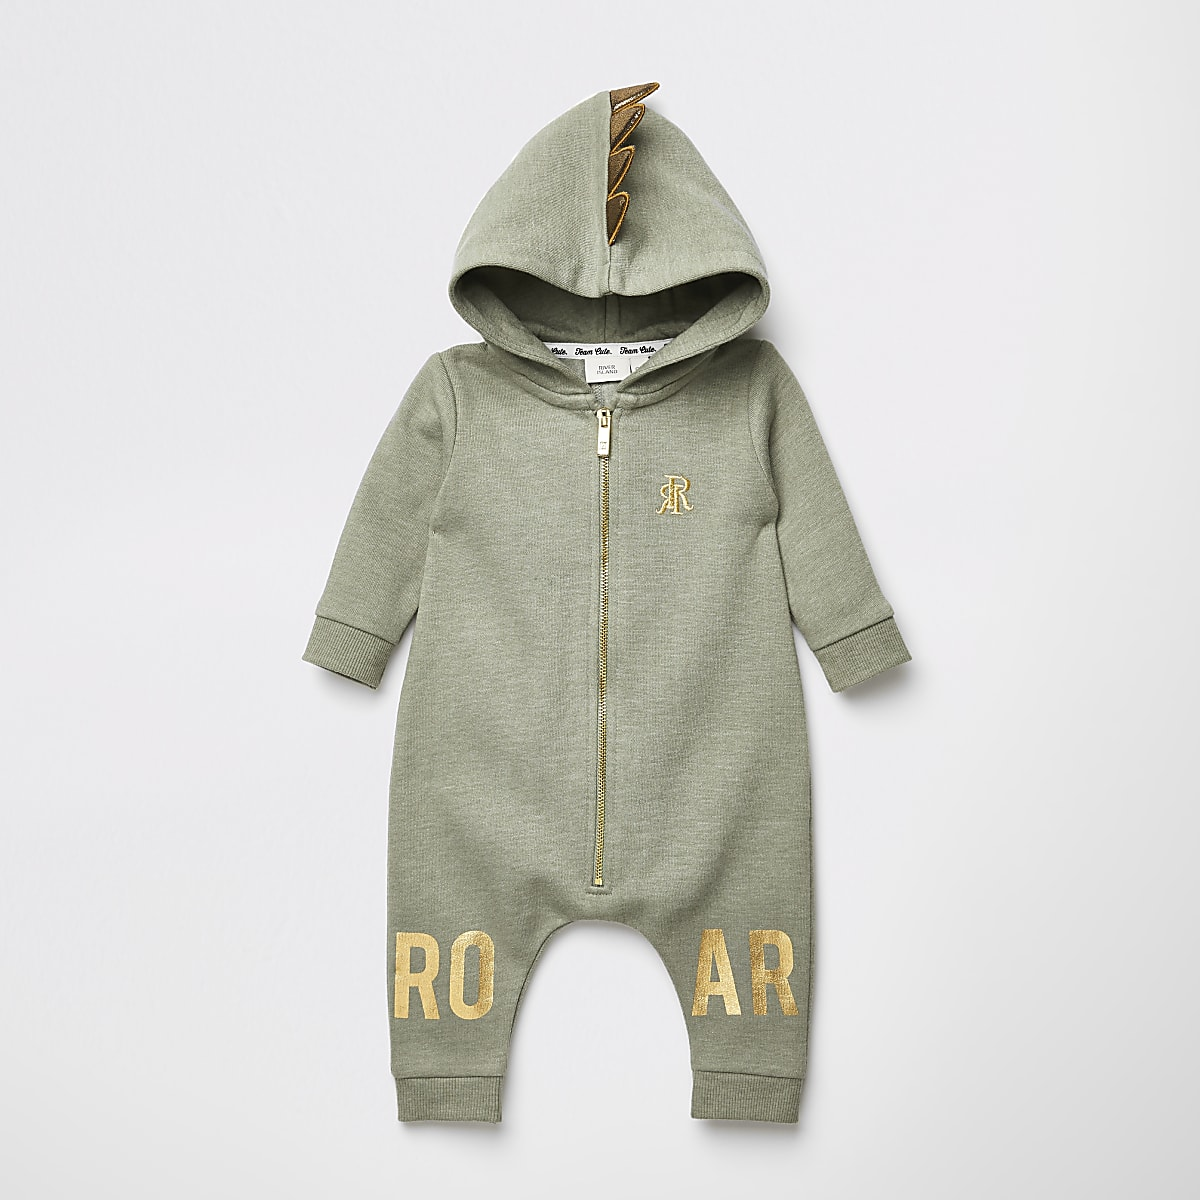 Baby khaki 'Roar' hooded baby grow